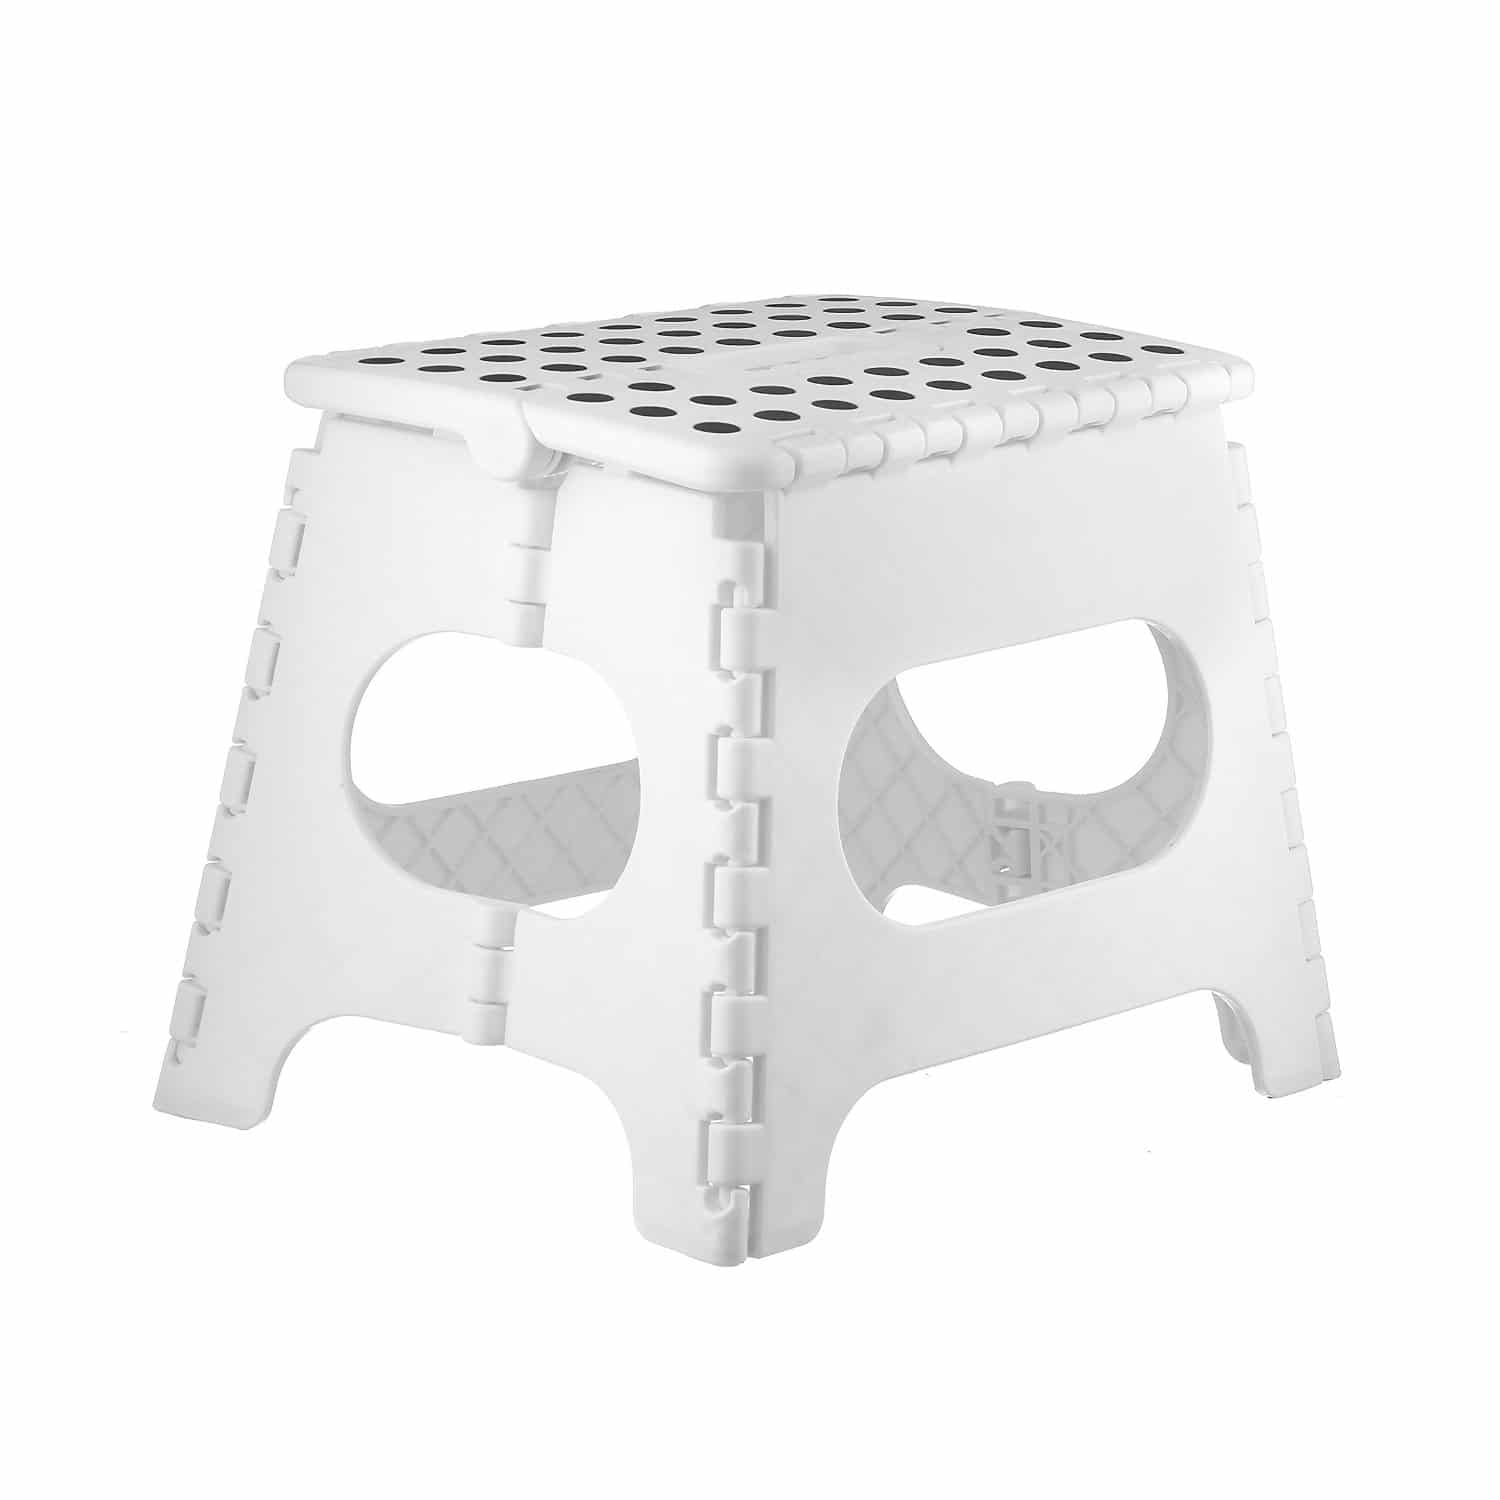 Folding Step Stool Indoors 11 Inches Holds Up To 300